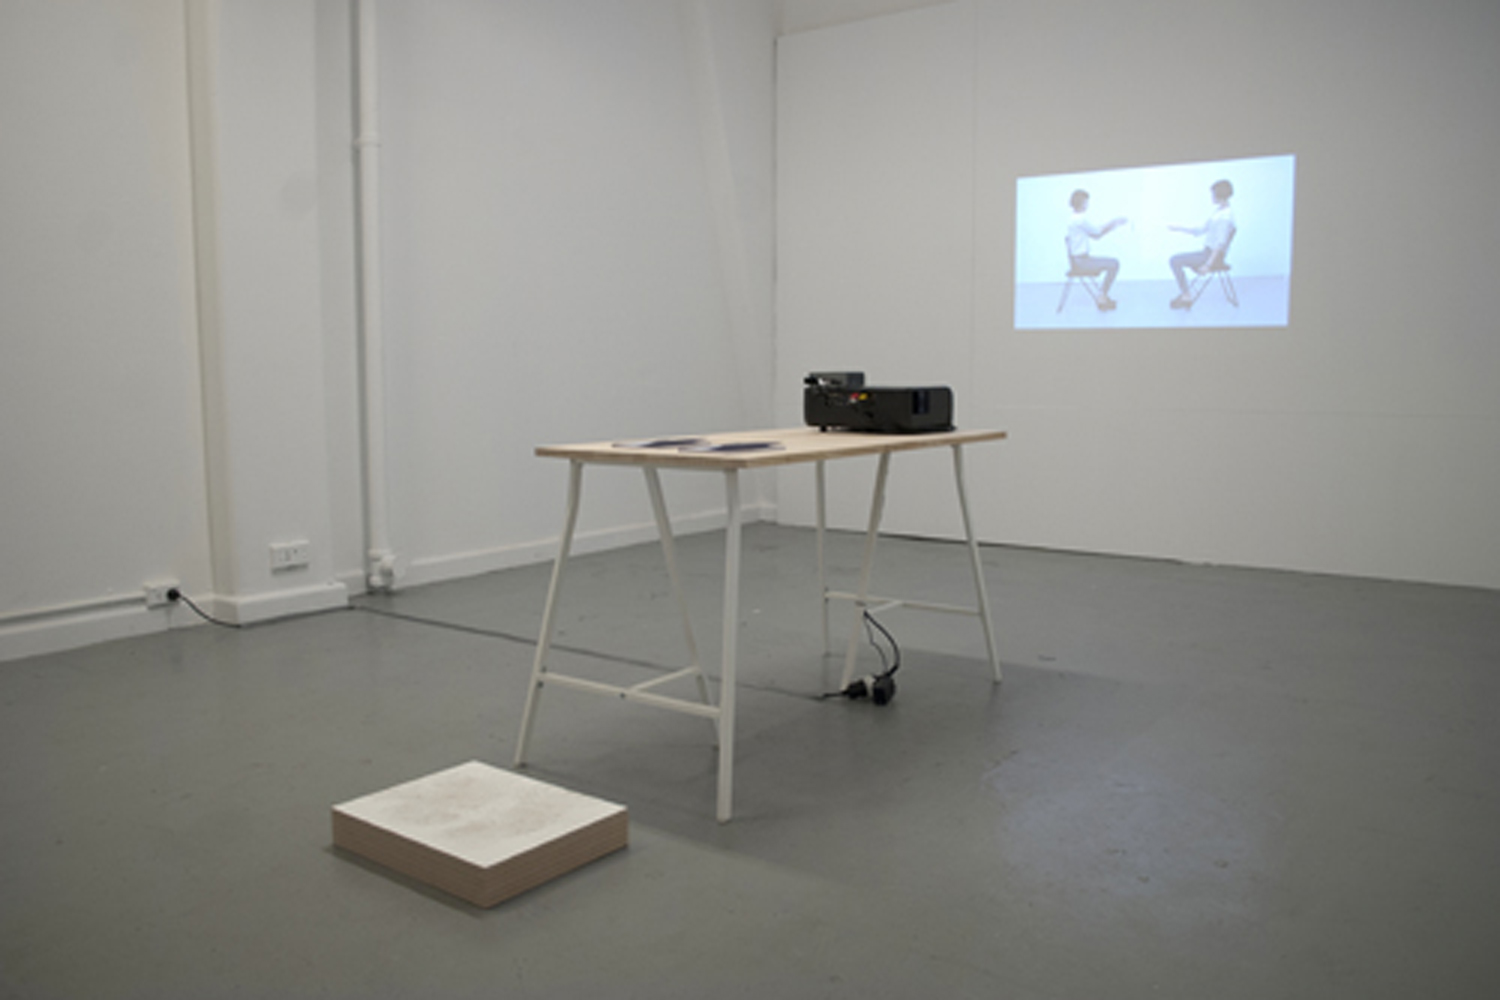 SUMMER STUDIO  Agnes So + Jason Chau  11 – 14 JAN 2012